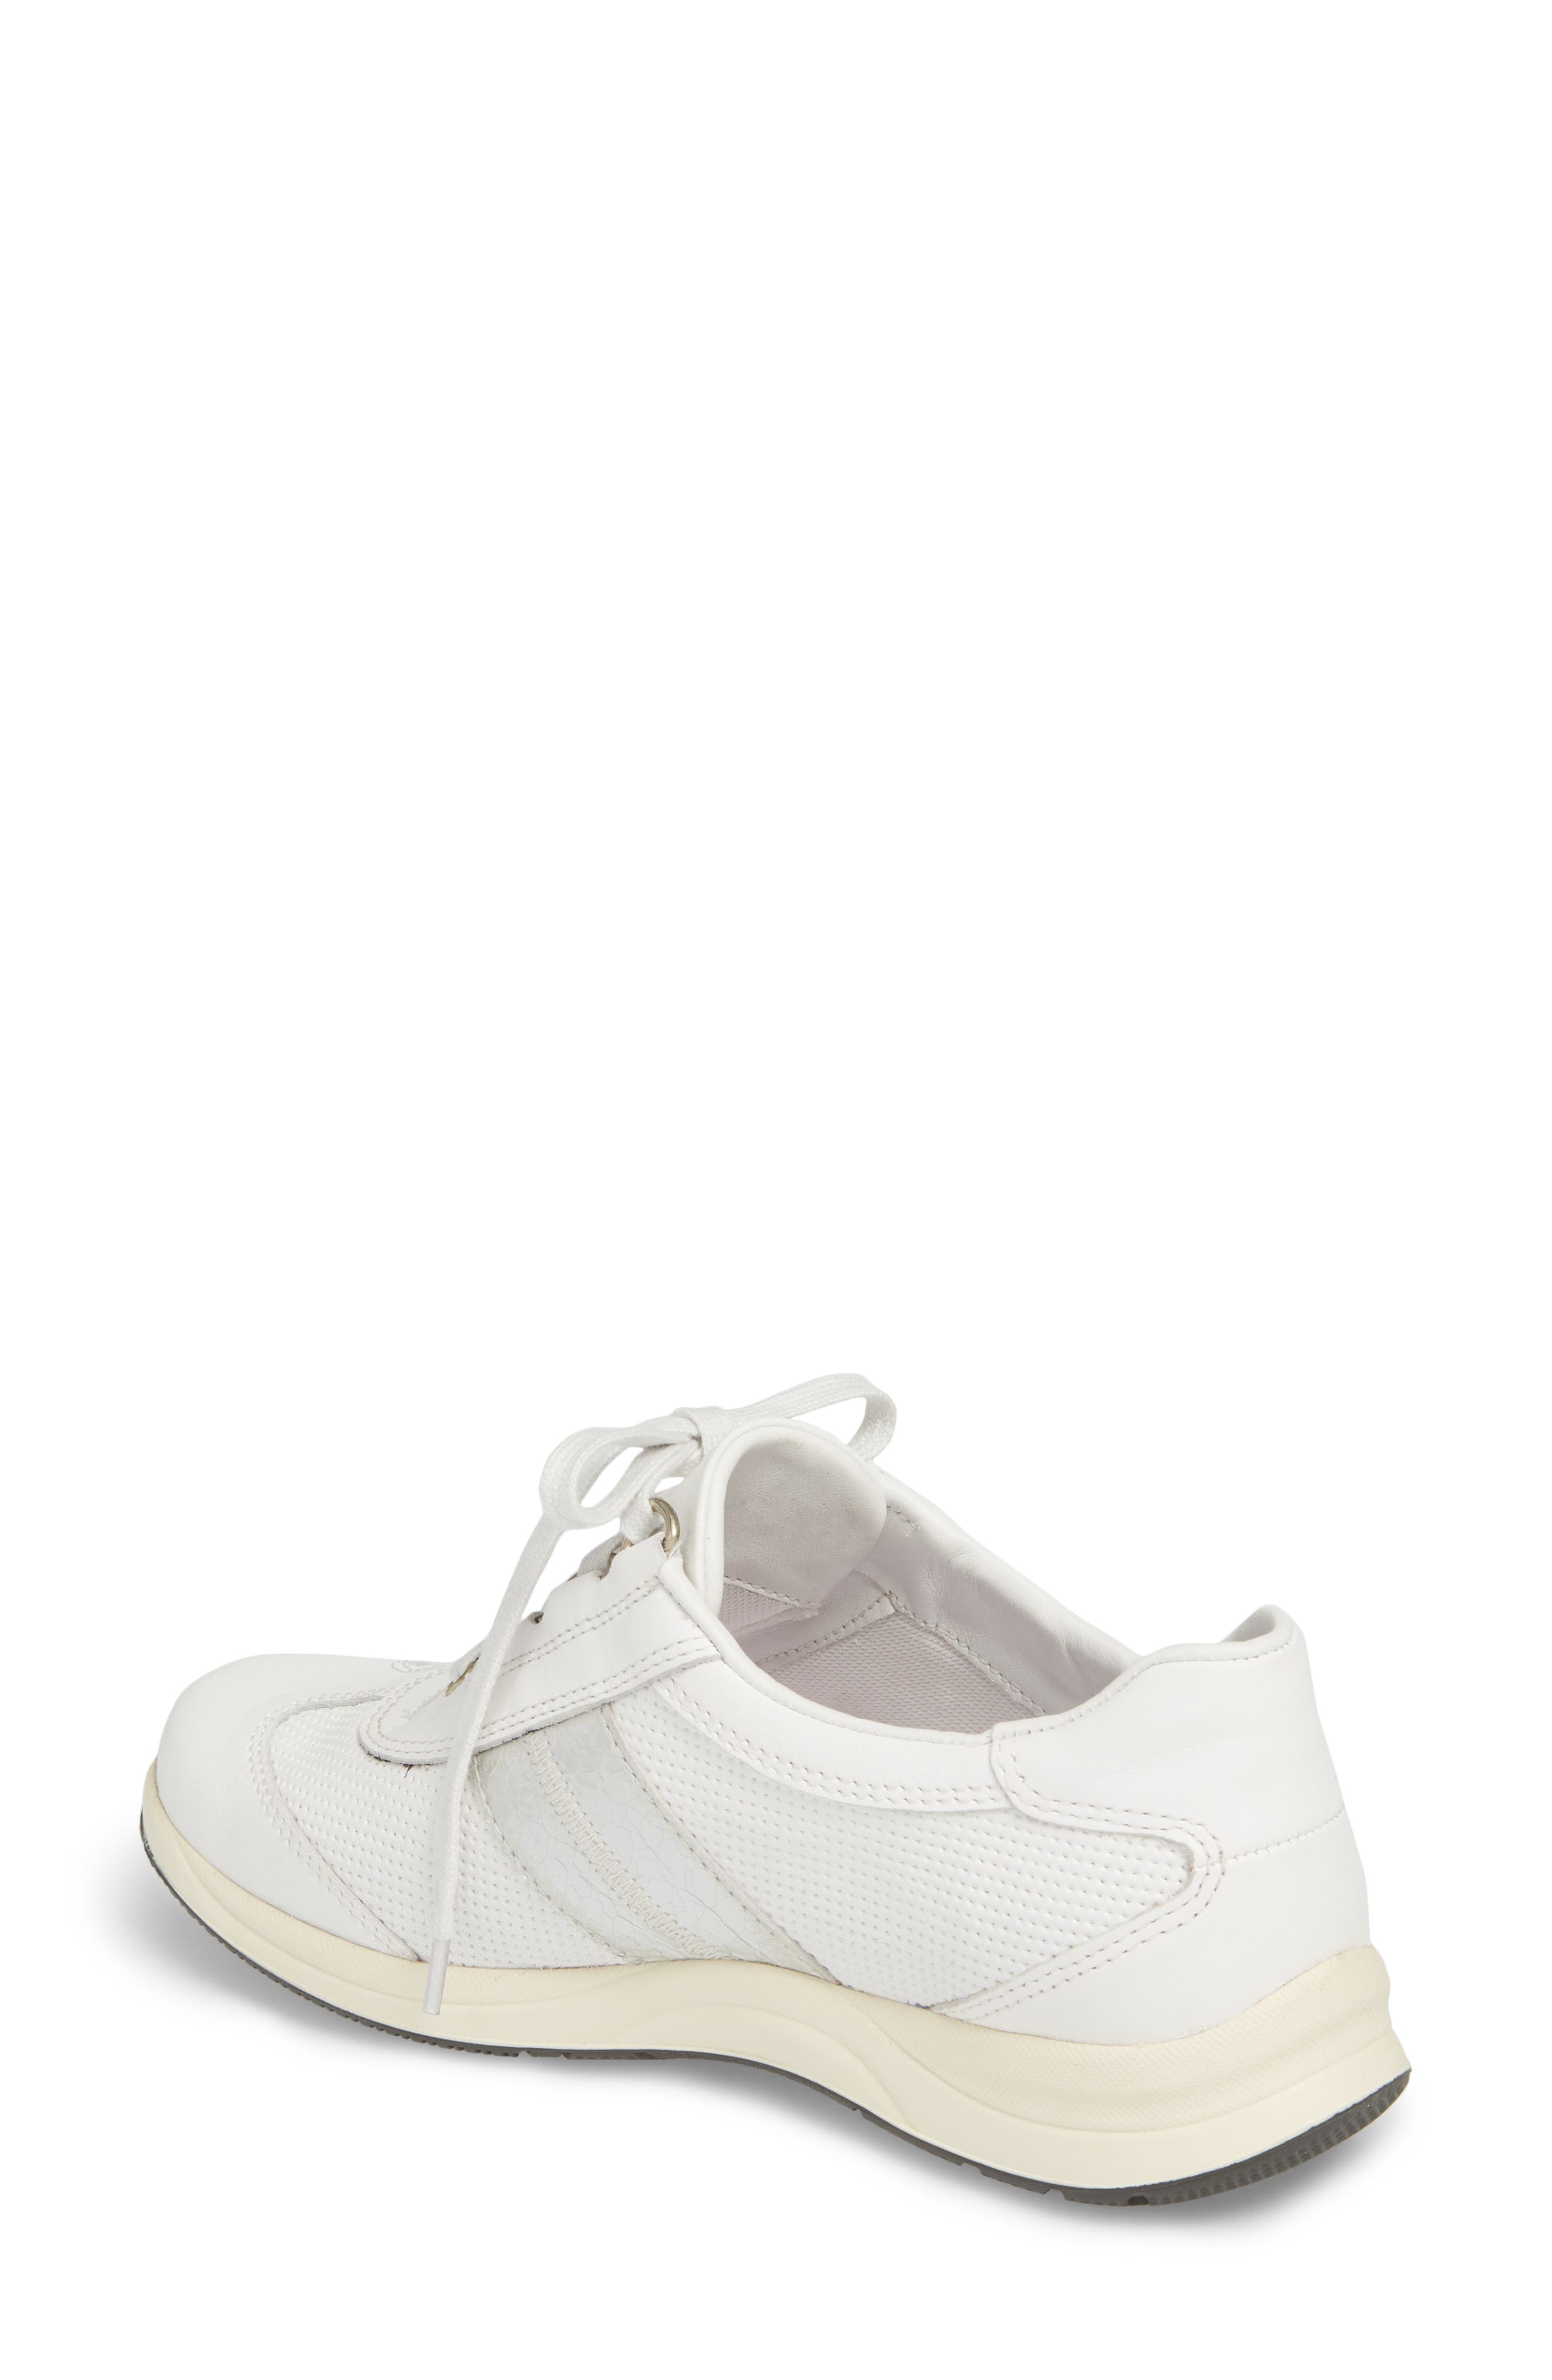 Laser Perforated Walking Shoe,                             Alternate thumbnail 2, color,                             White Fabric